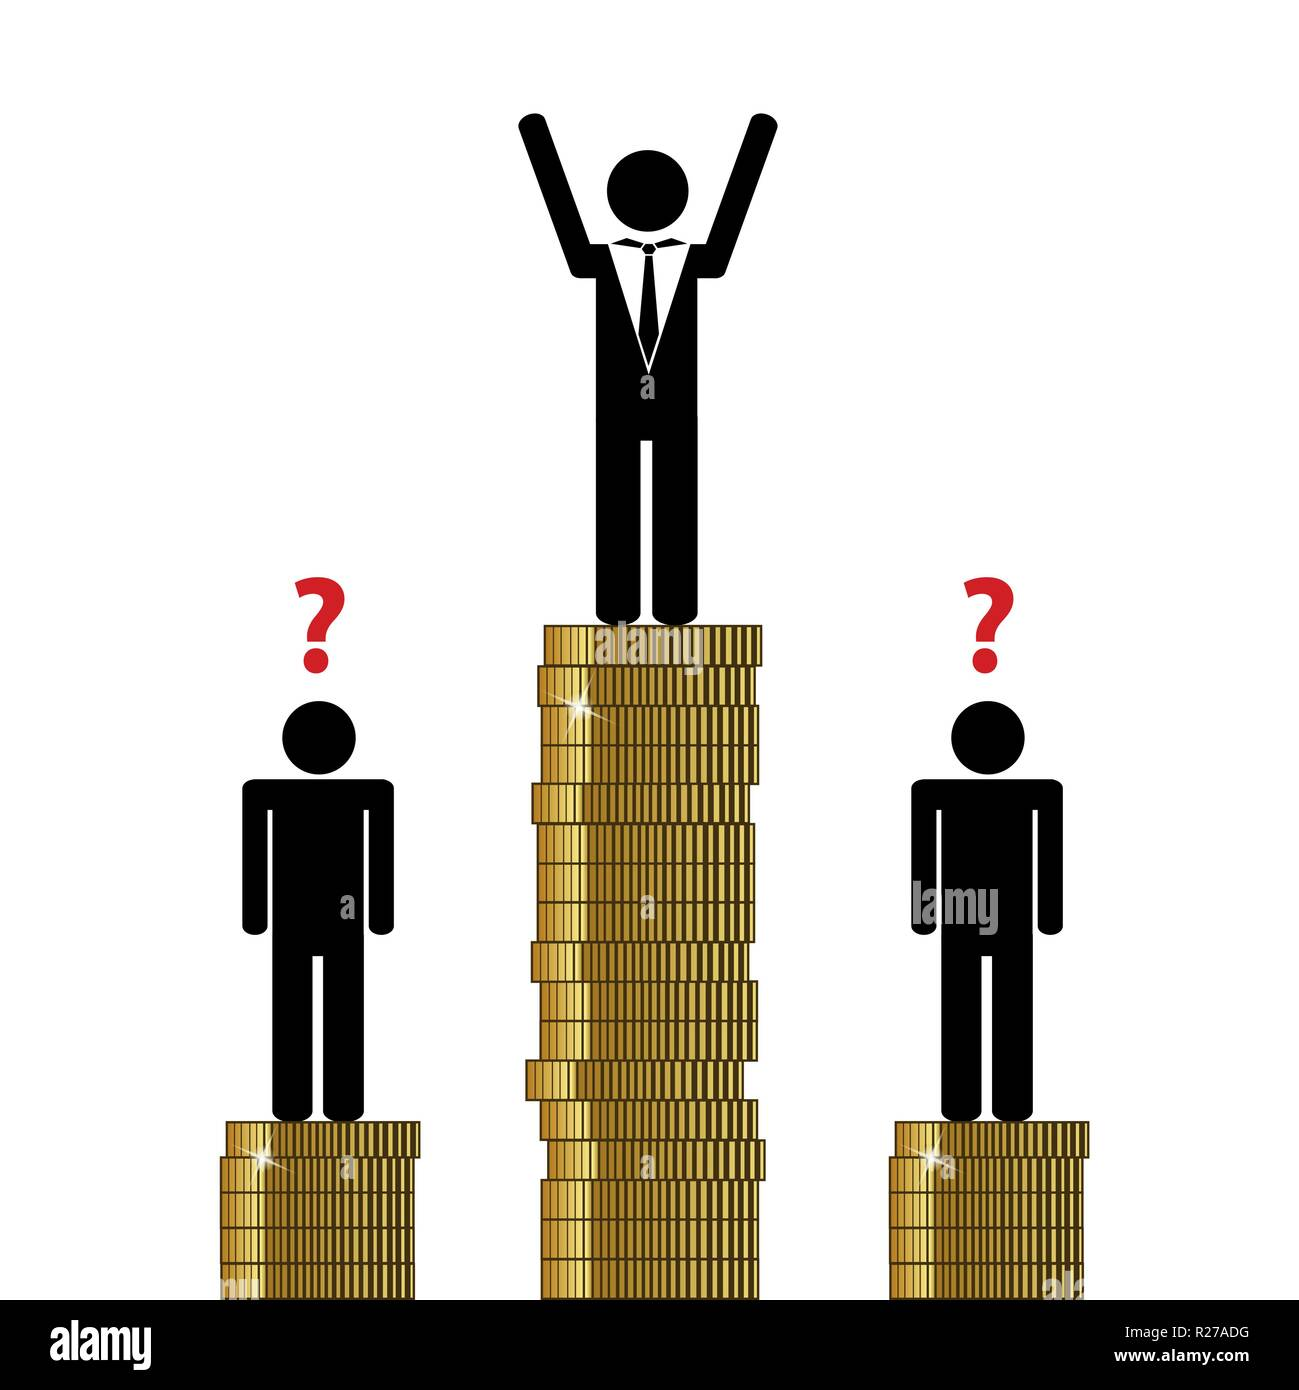 gap between rich and poor finance pictogram vector illustration EPS10 - Stock Image